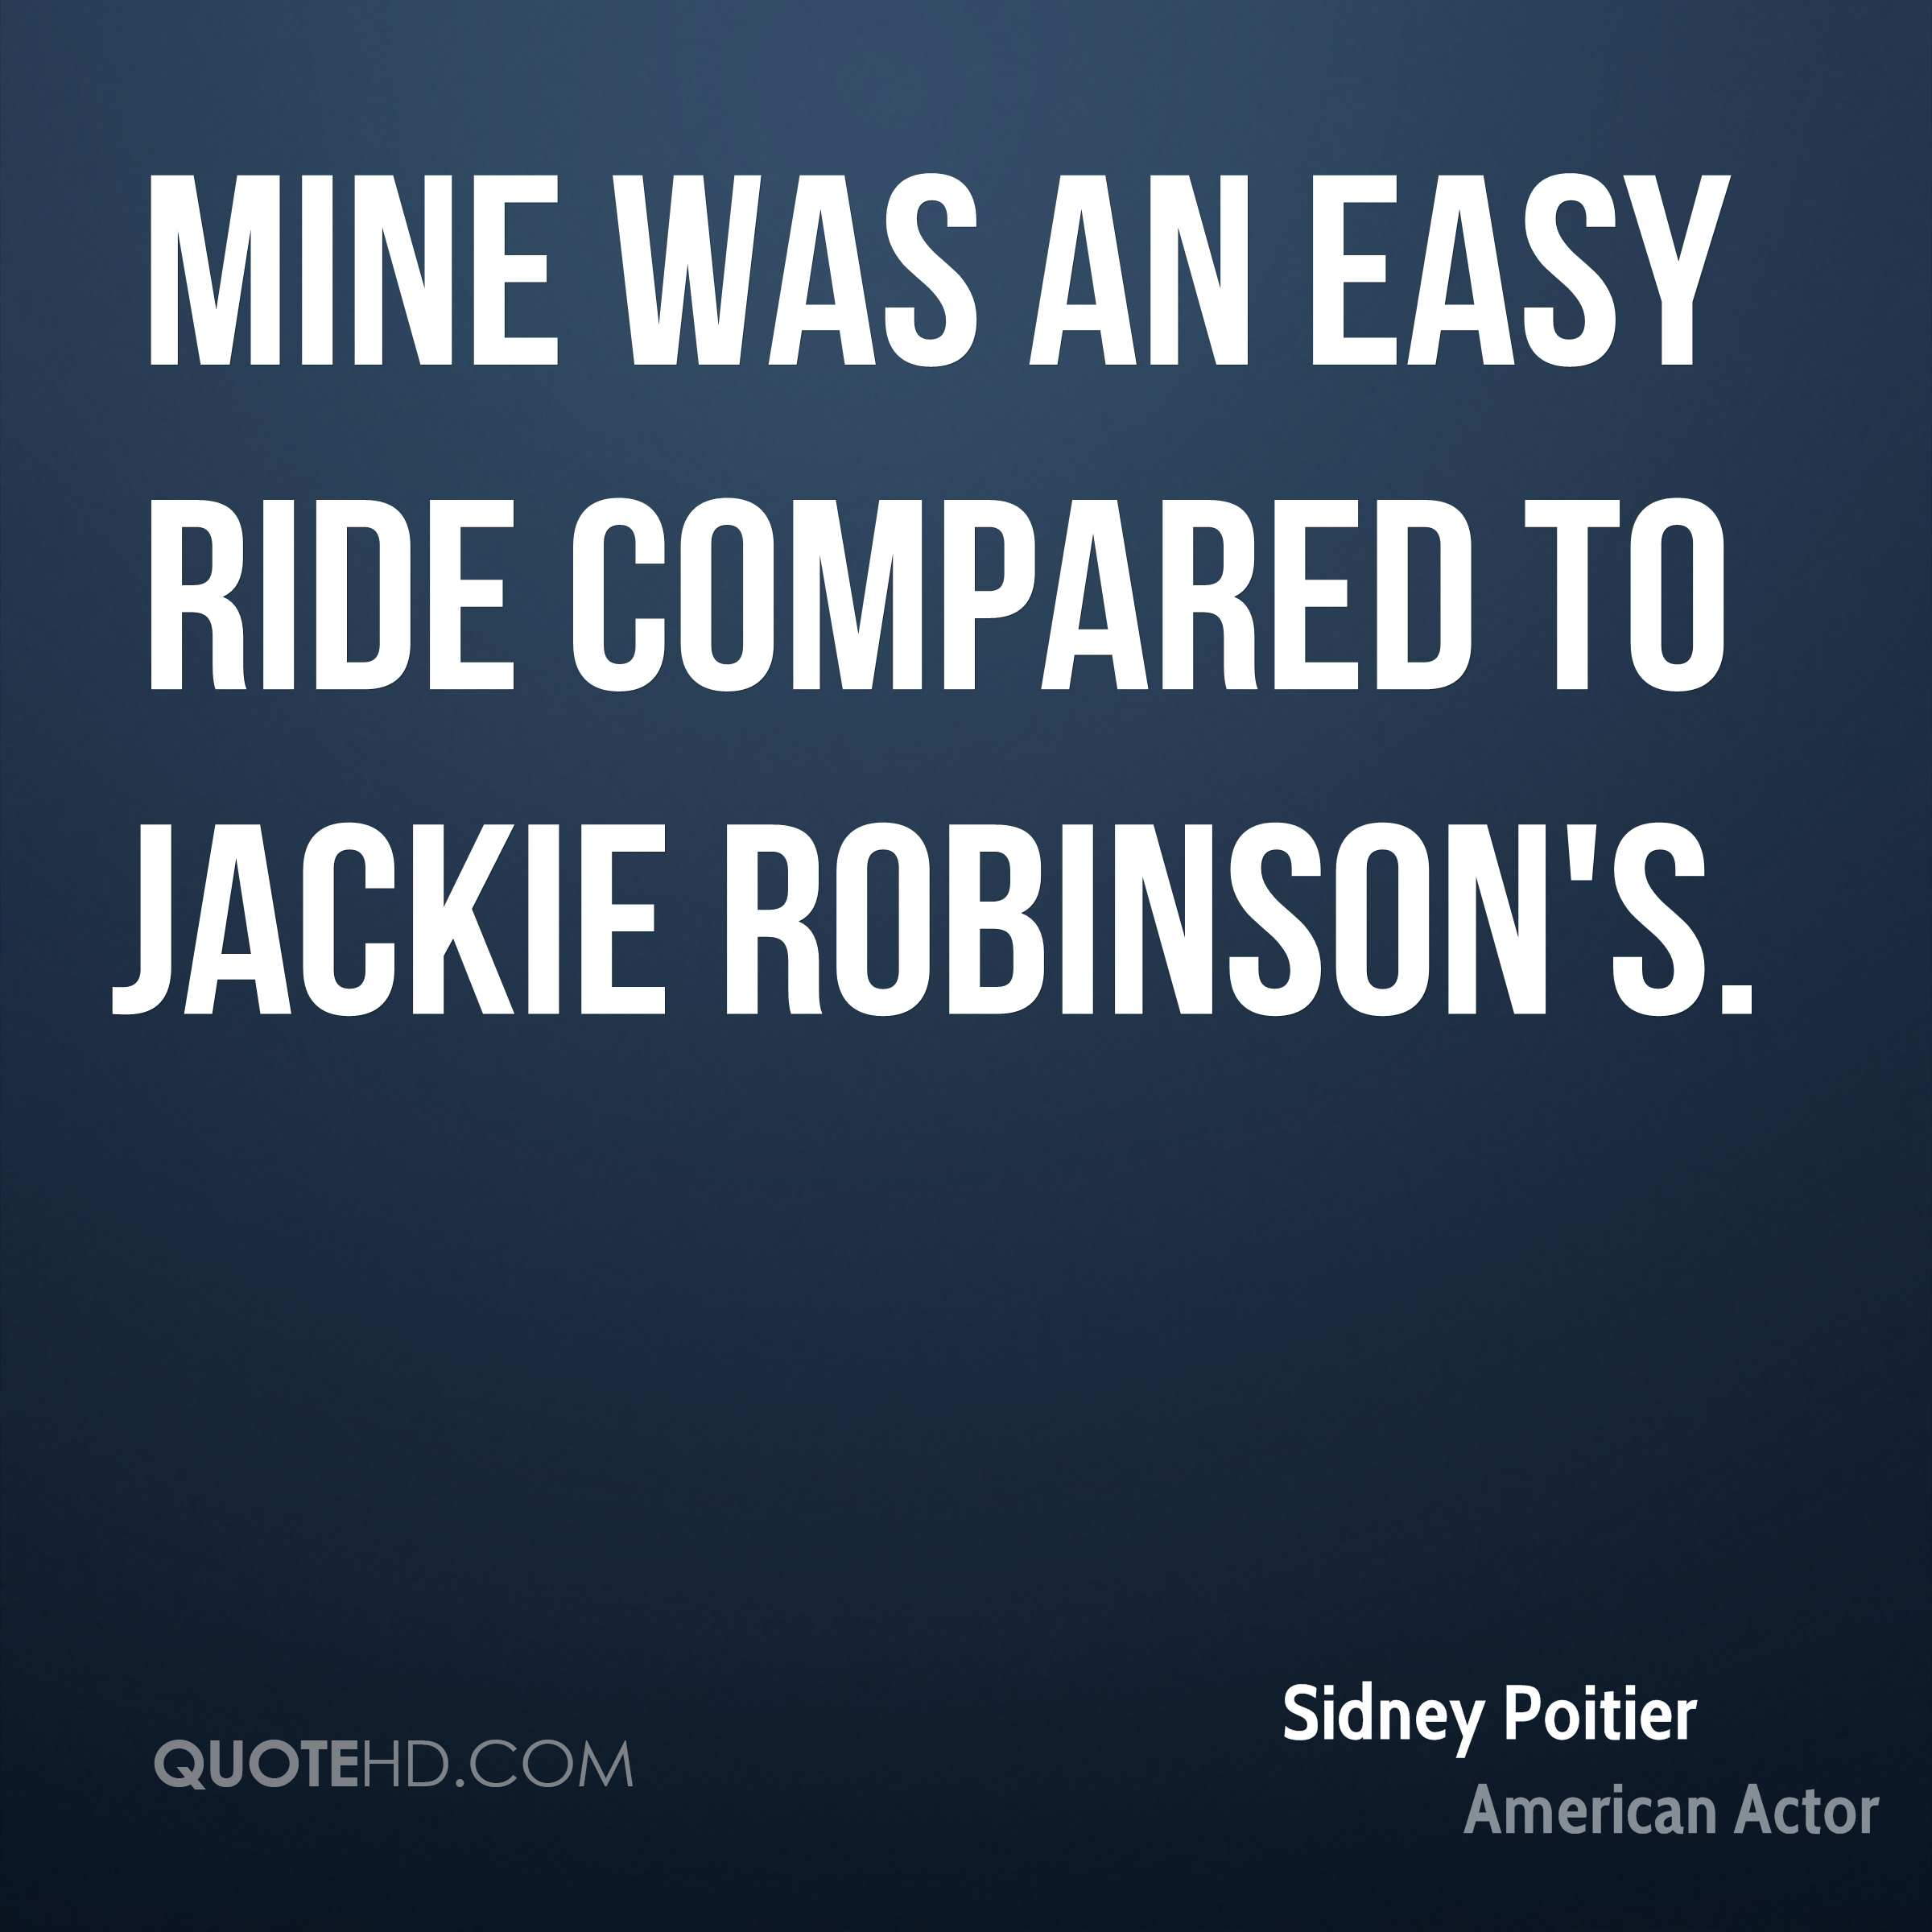 Mine was an easy ride compared to Jackie Robinson's.